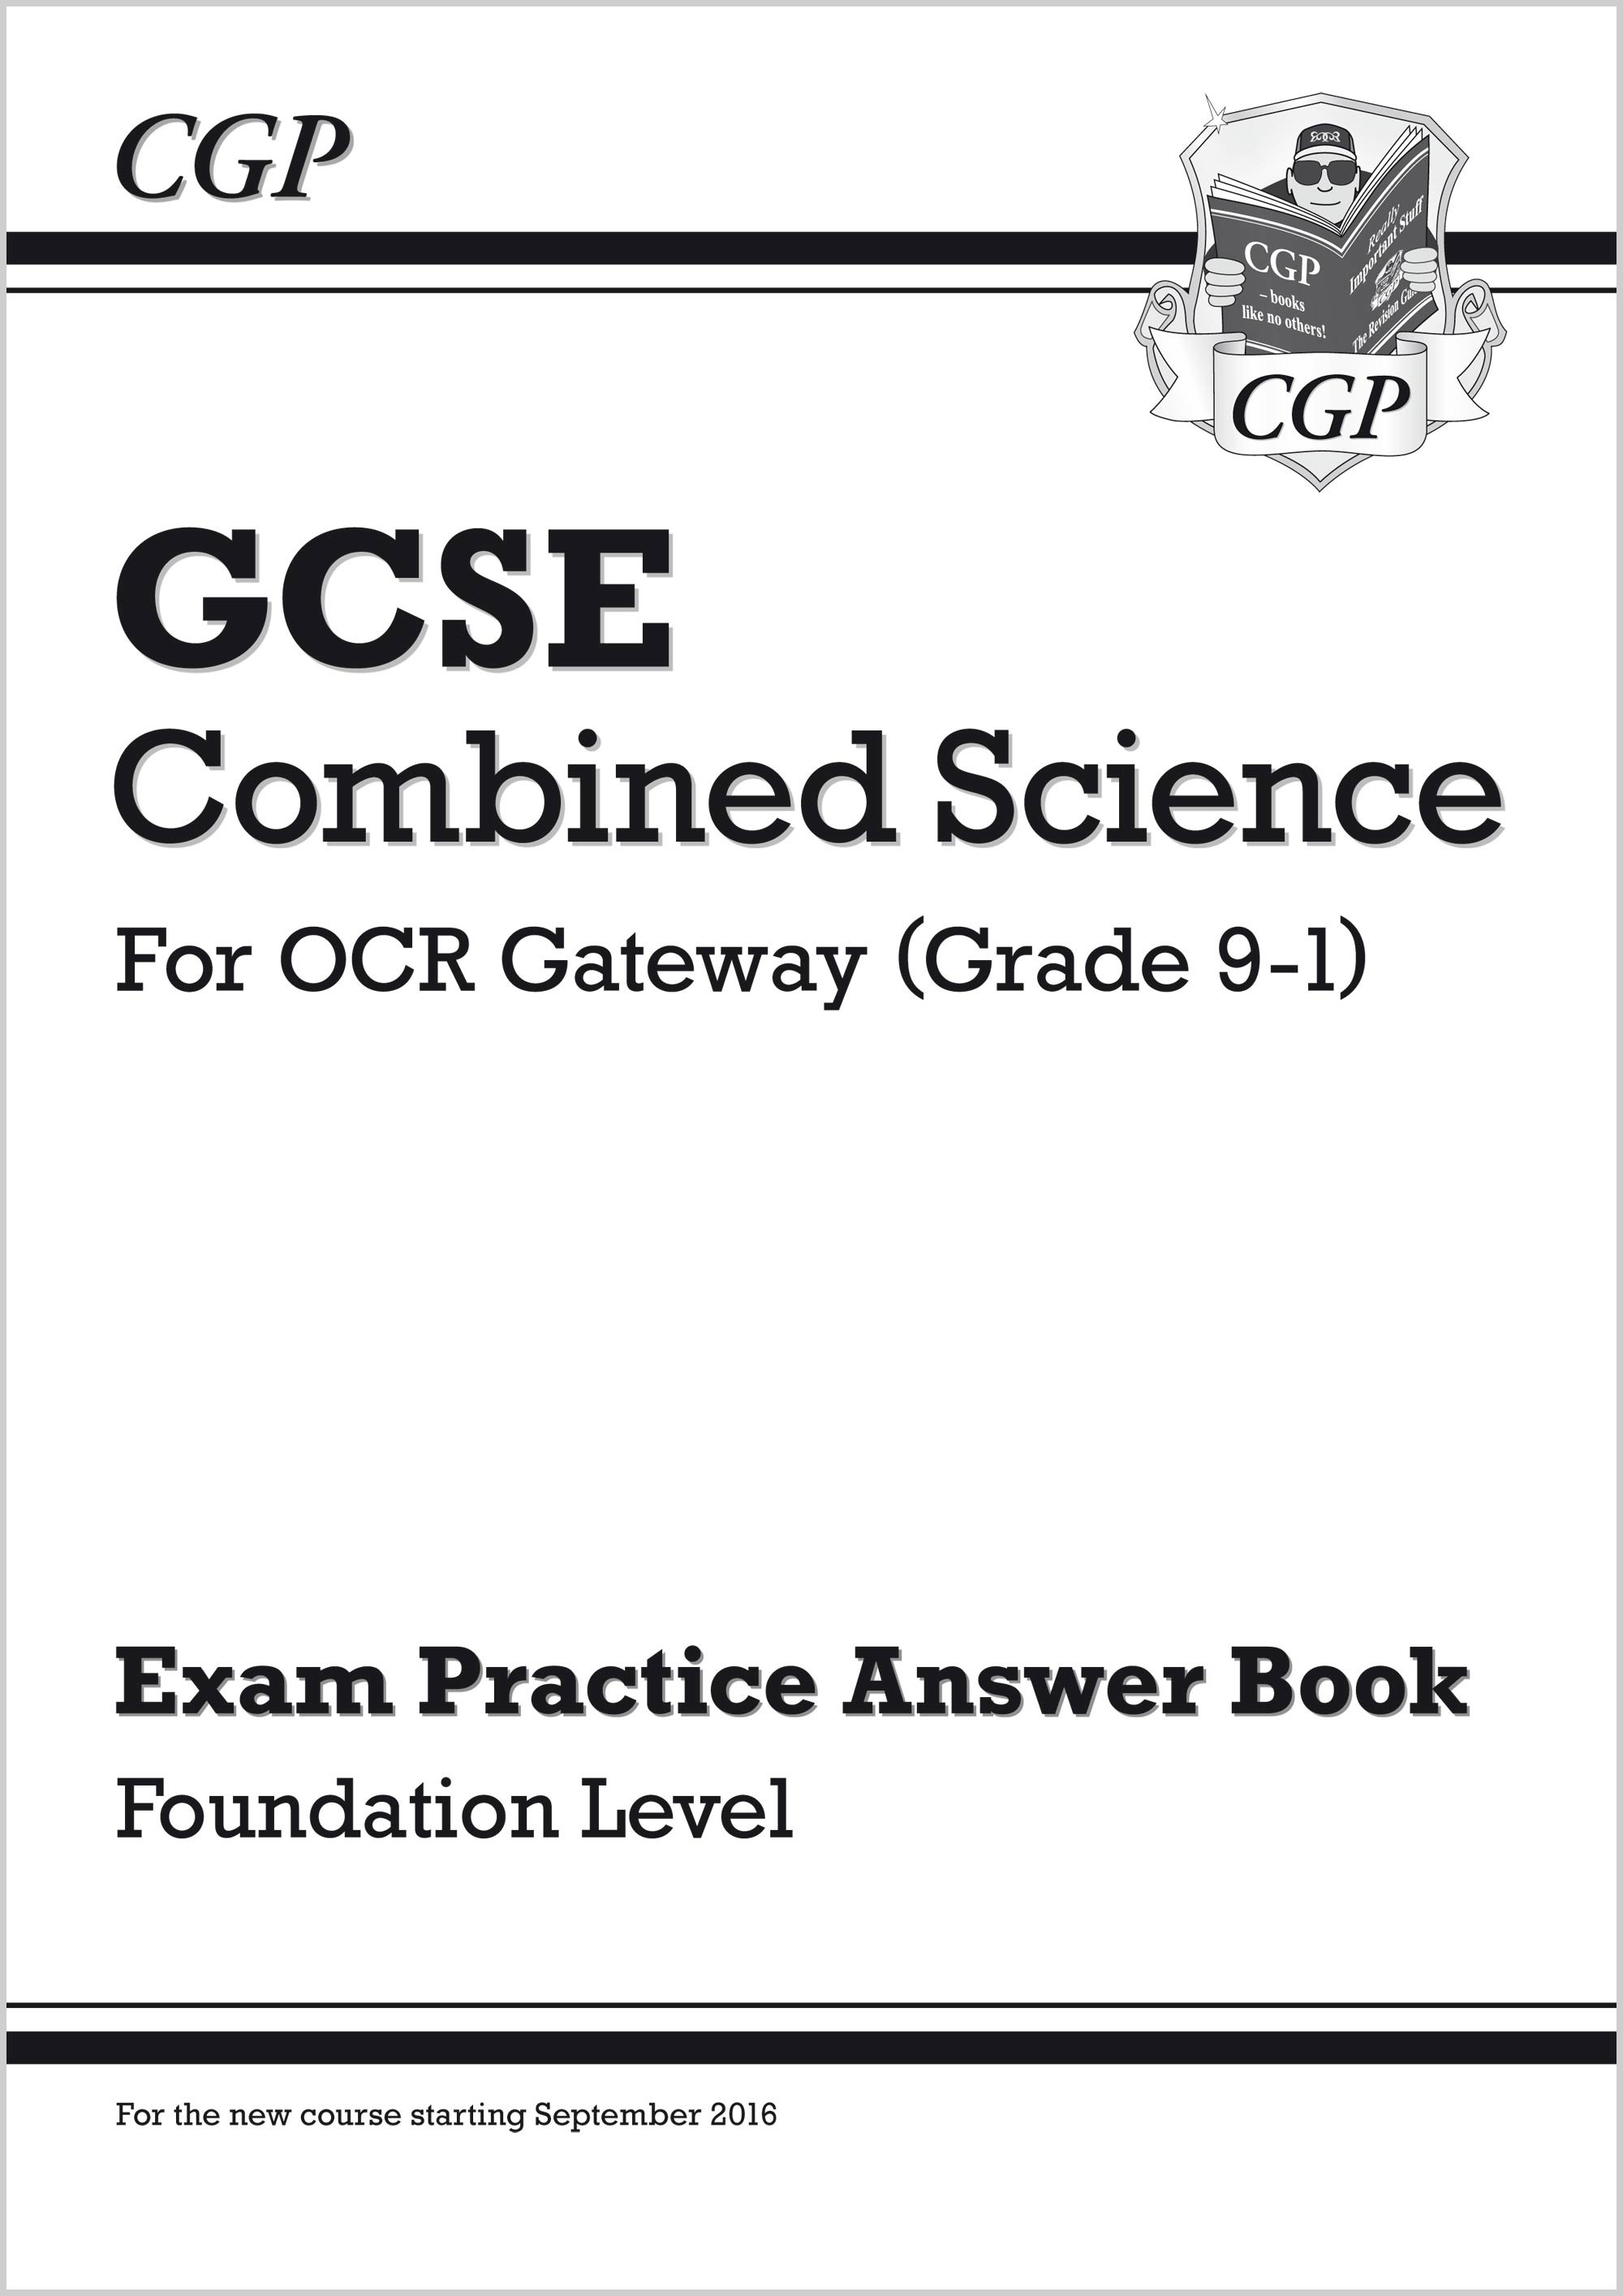 SRFQA41 - GCSE Combined Science: OCR Gateway Answers (for Exam Practice Workbook) - Foundation